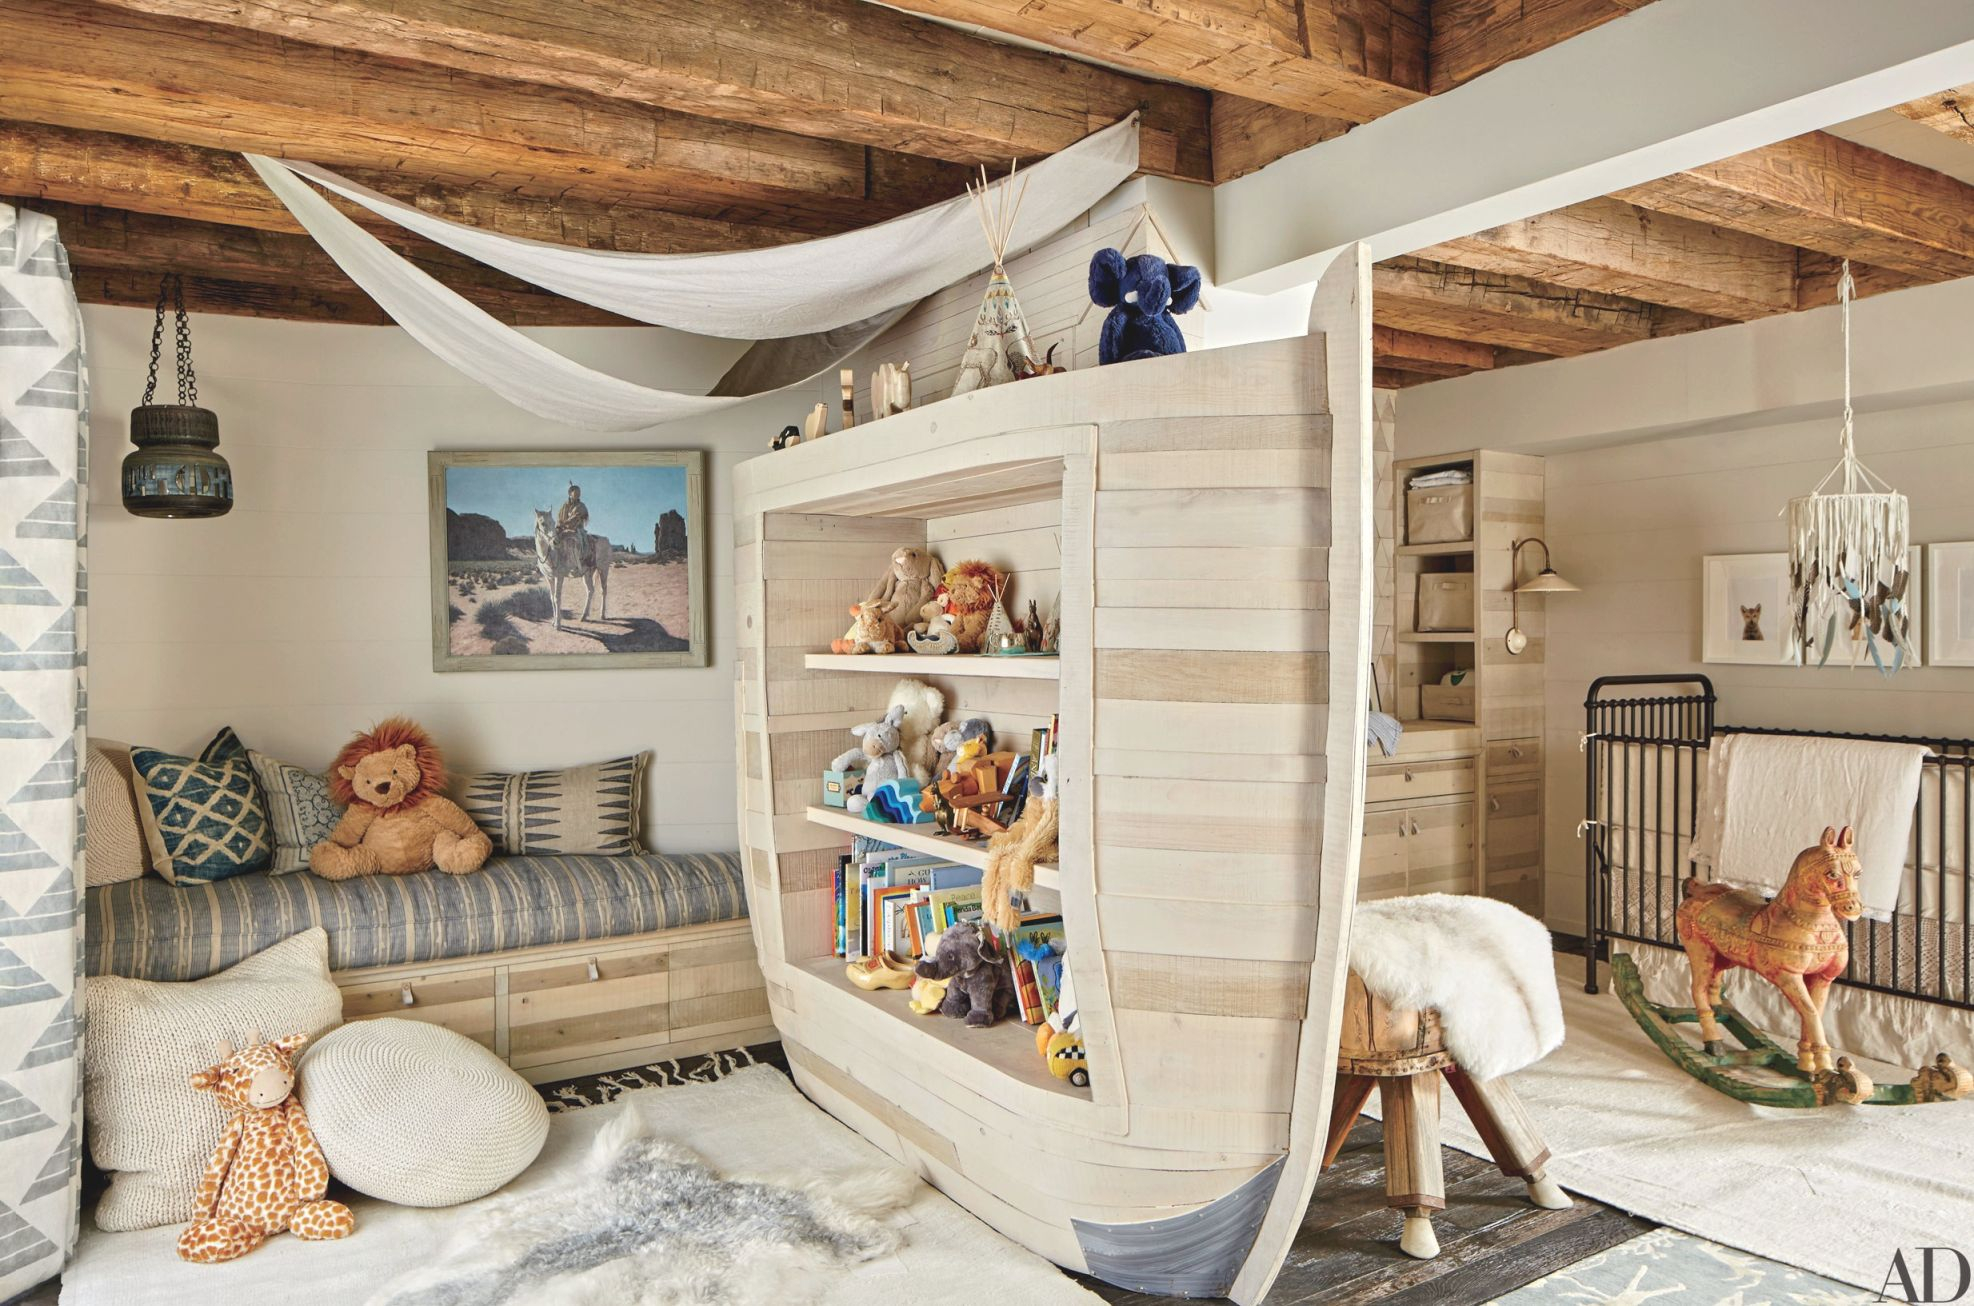 54 Stylish Kids Bedroom & Nursery Ideas | Architectural Digest for Inspirational Childrens Bedroom Decor Ideas